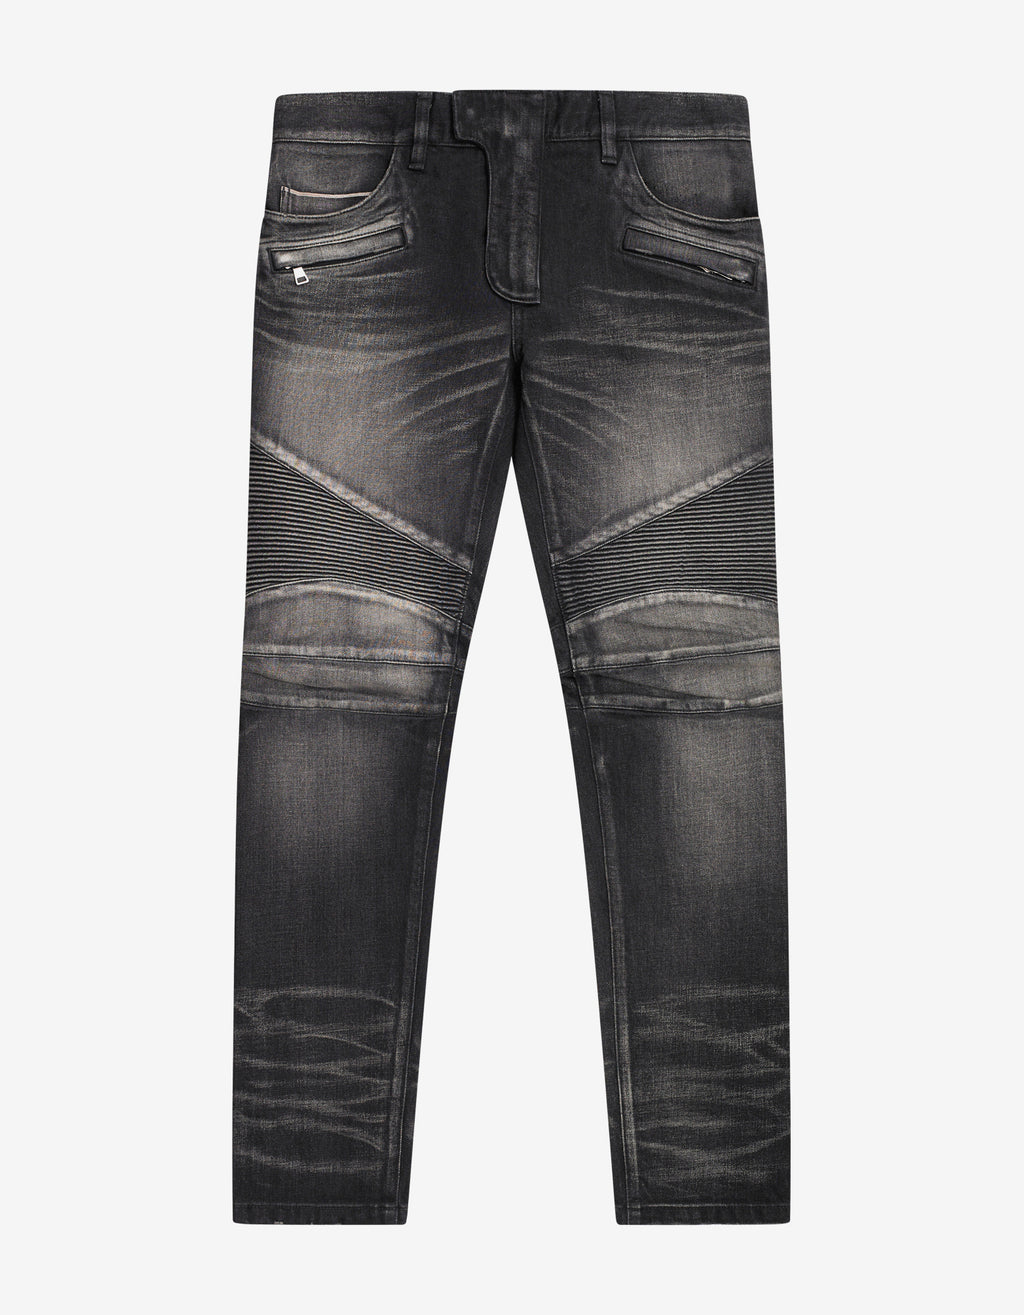 Wash Black Medallion Biker Jeans